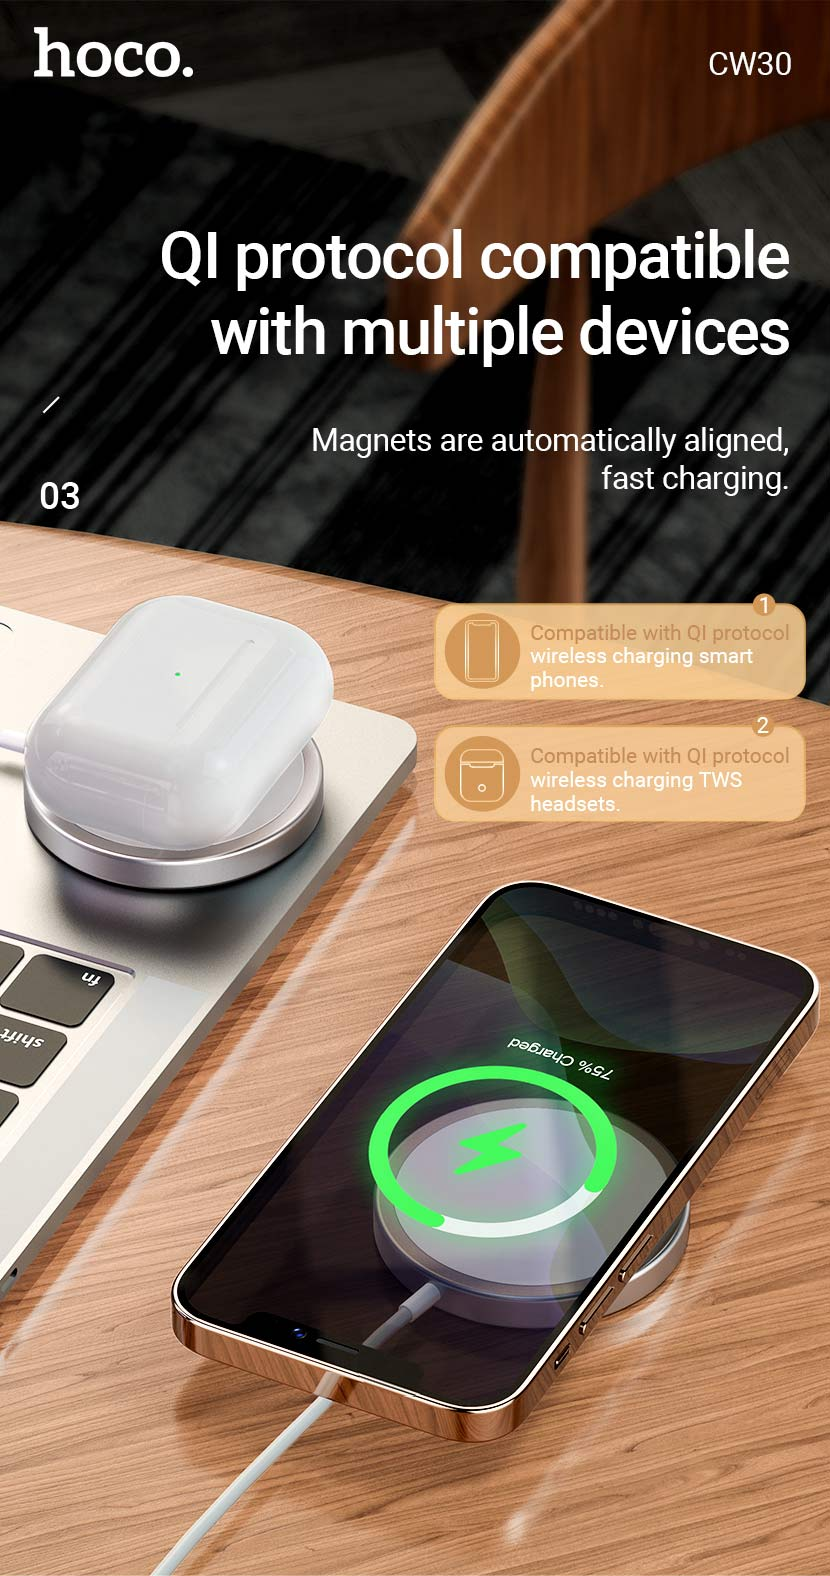 hoco news cw30 original series magnetic wireless fast charger qi en